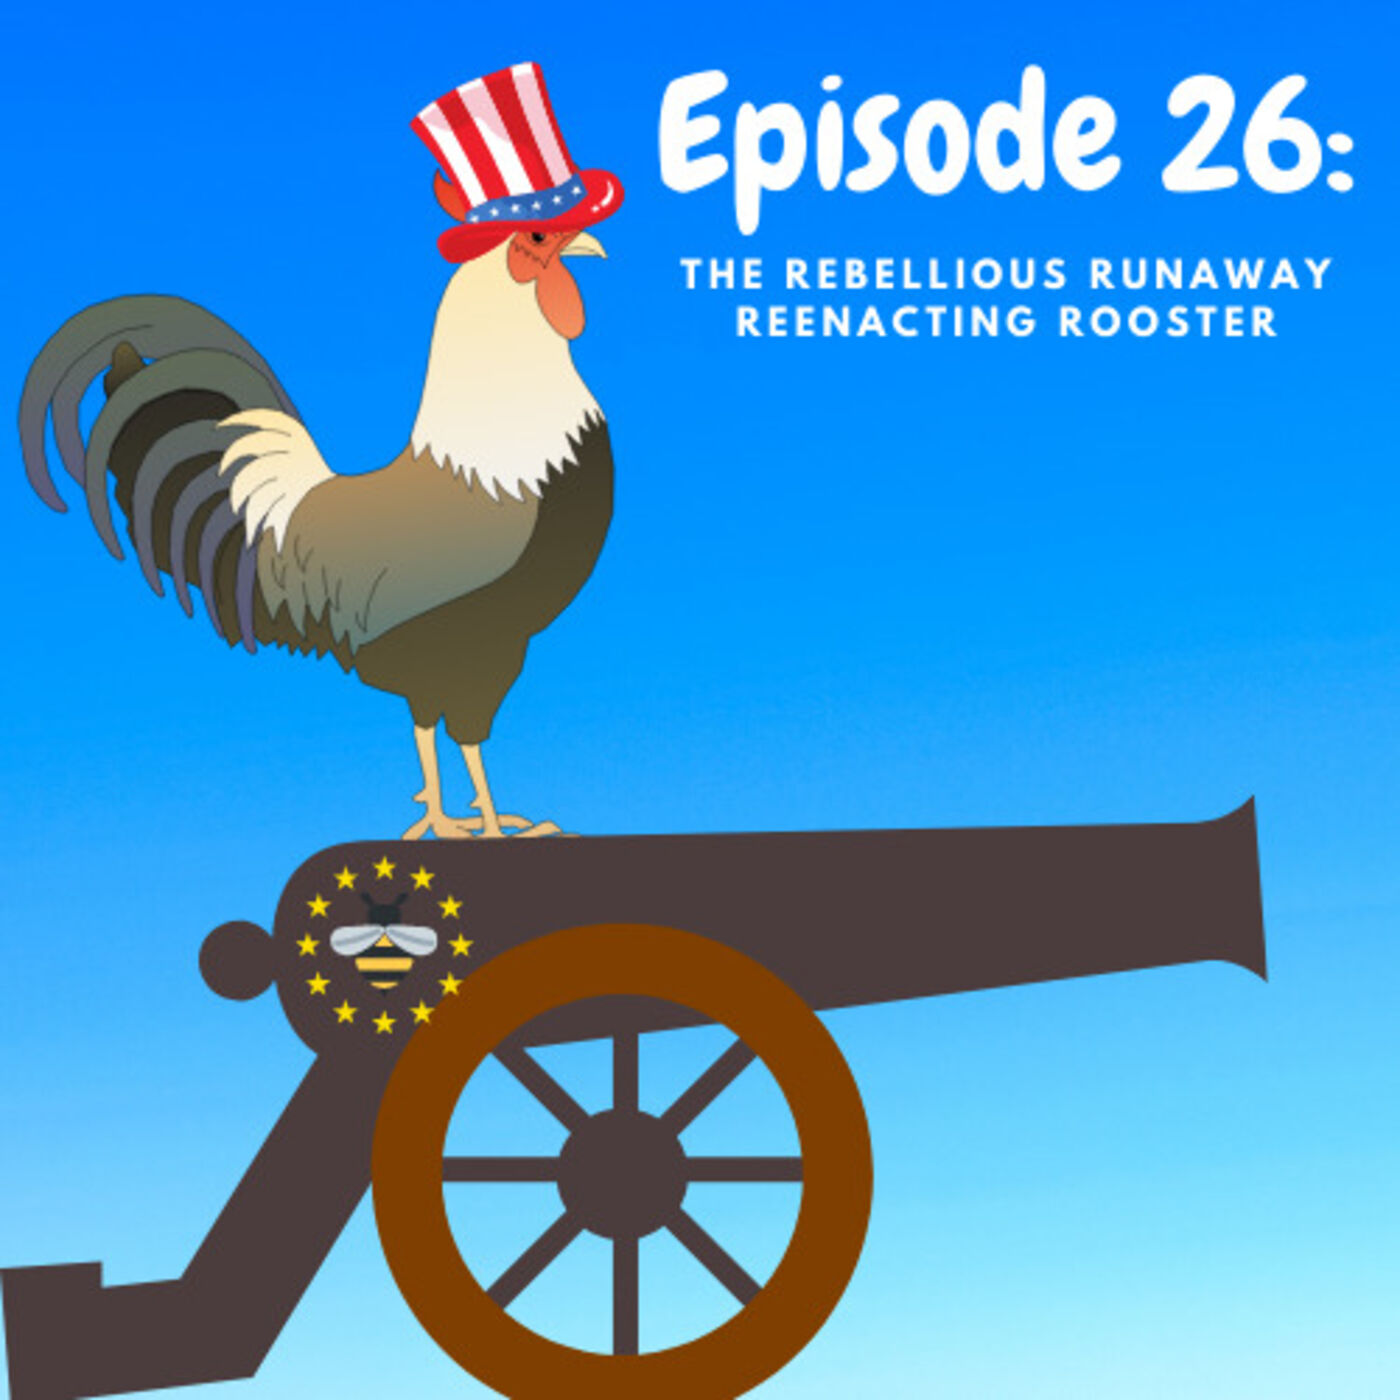 Ep 26: The Rebellious Runaway Reenacting Rooster